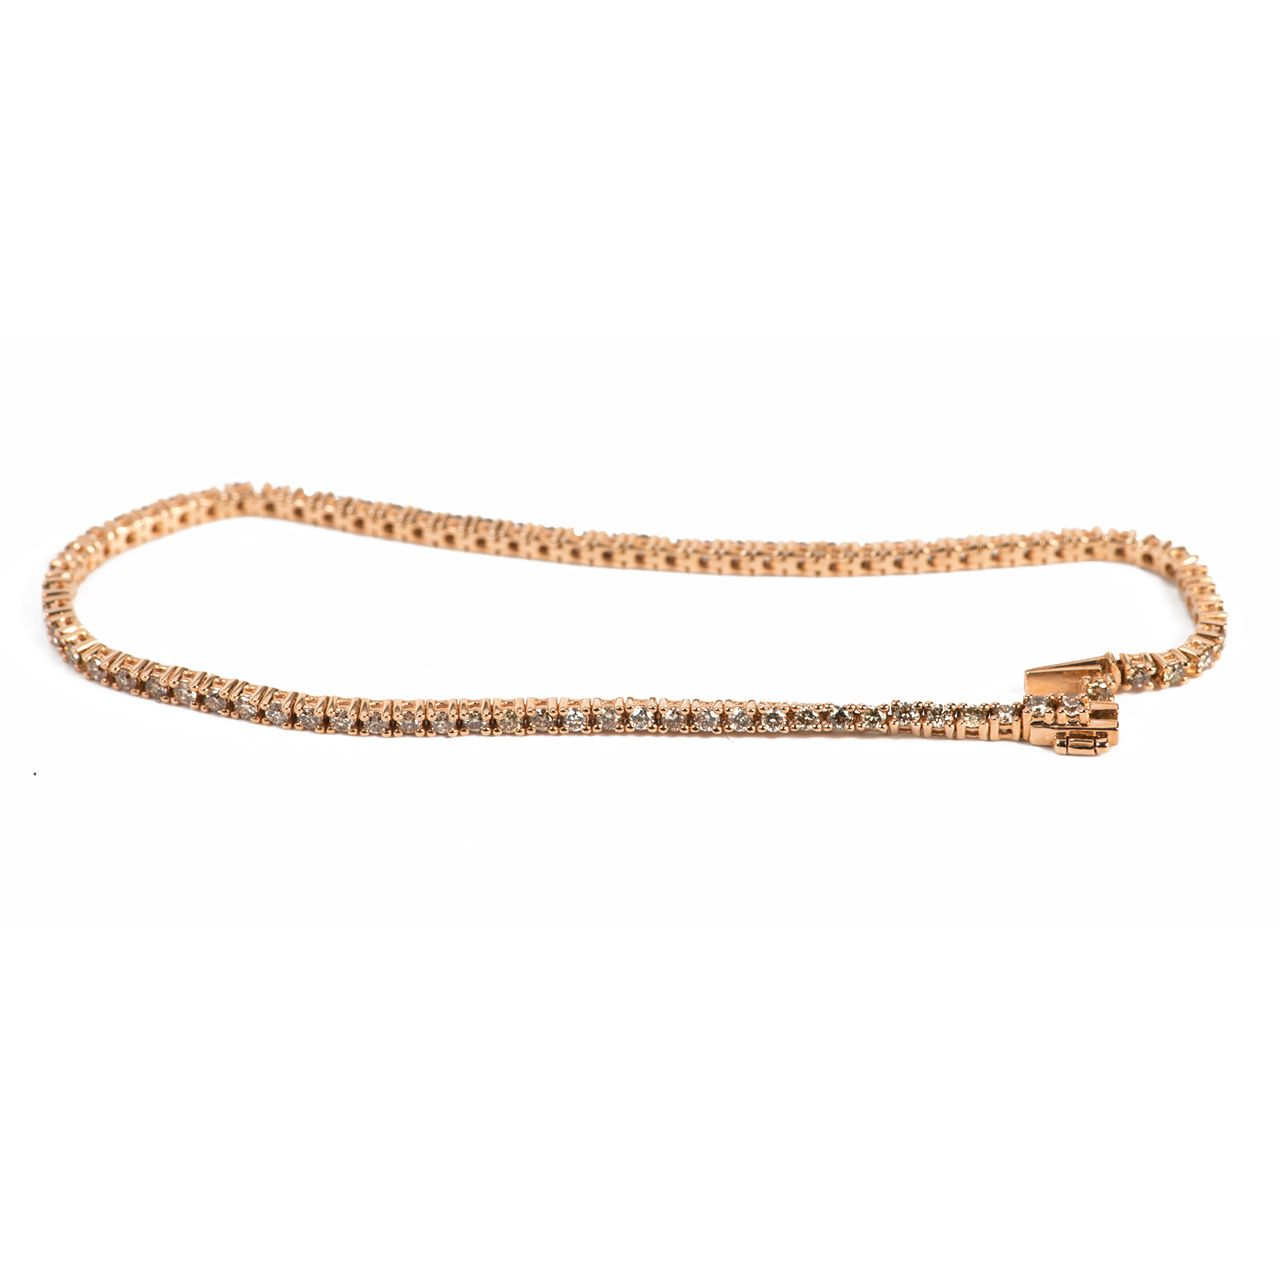 Thin Tennis Bracelet with Champagne Diamonds in Rose Gold